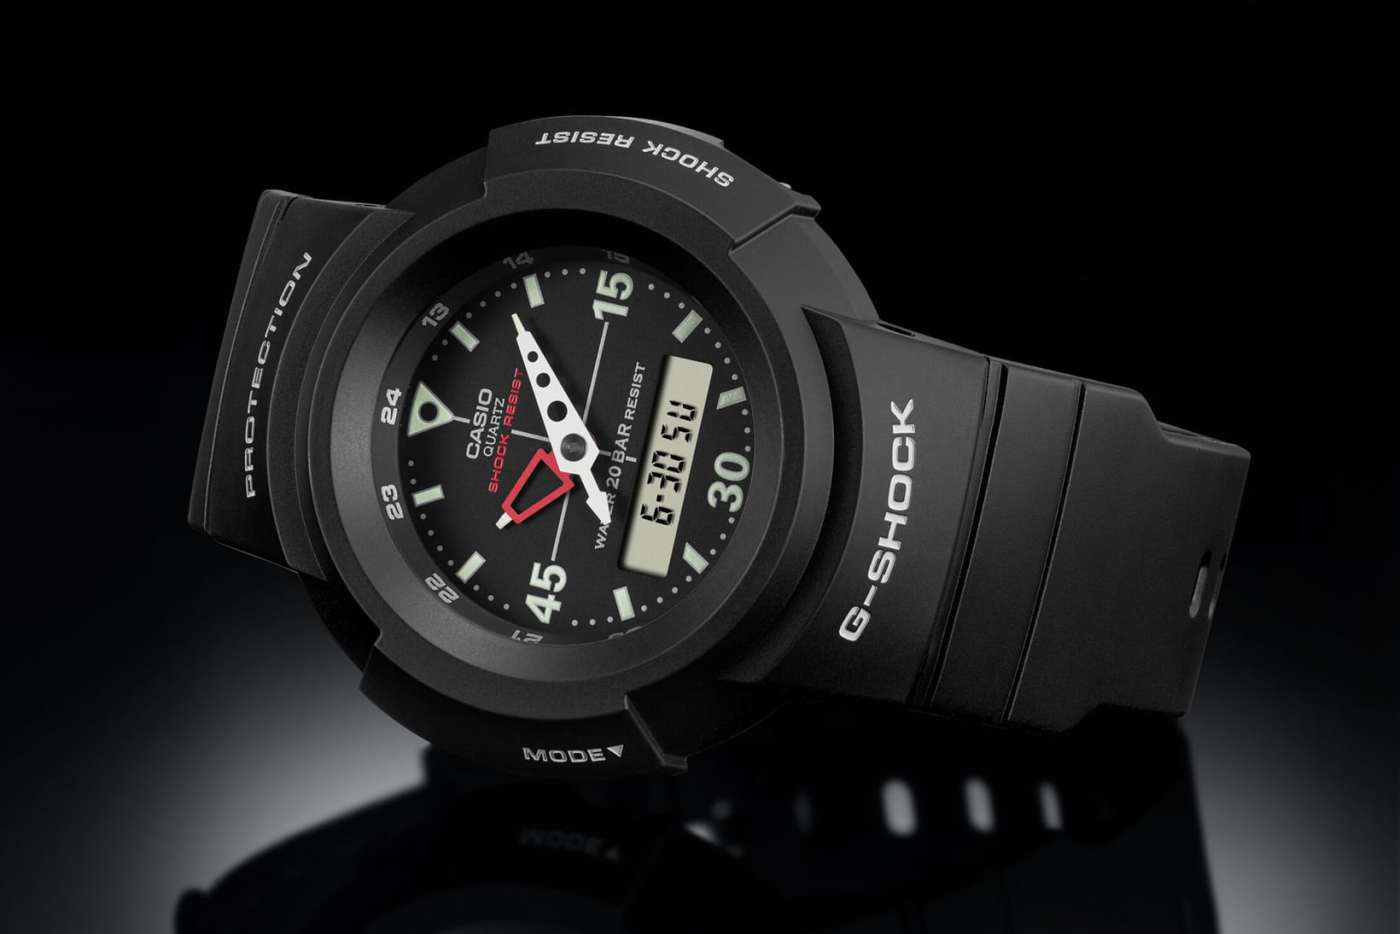 Casio G-Shock AW-500E-1E laying on side